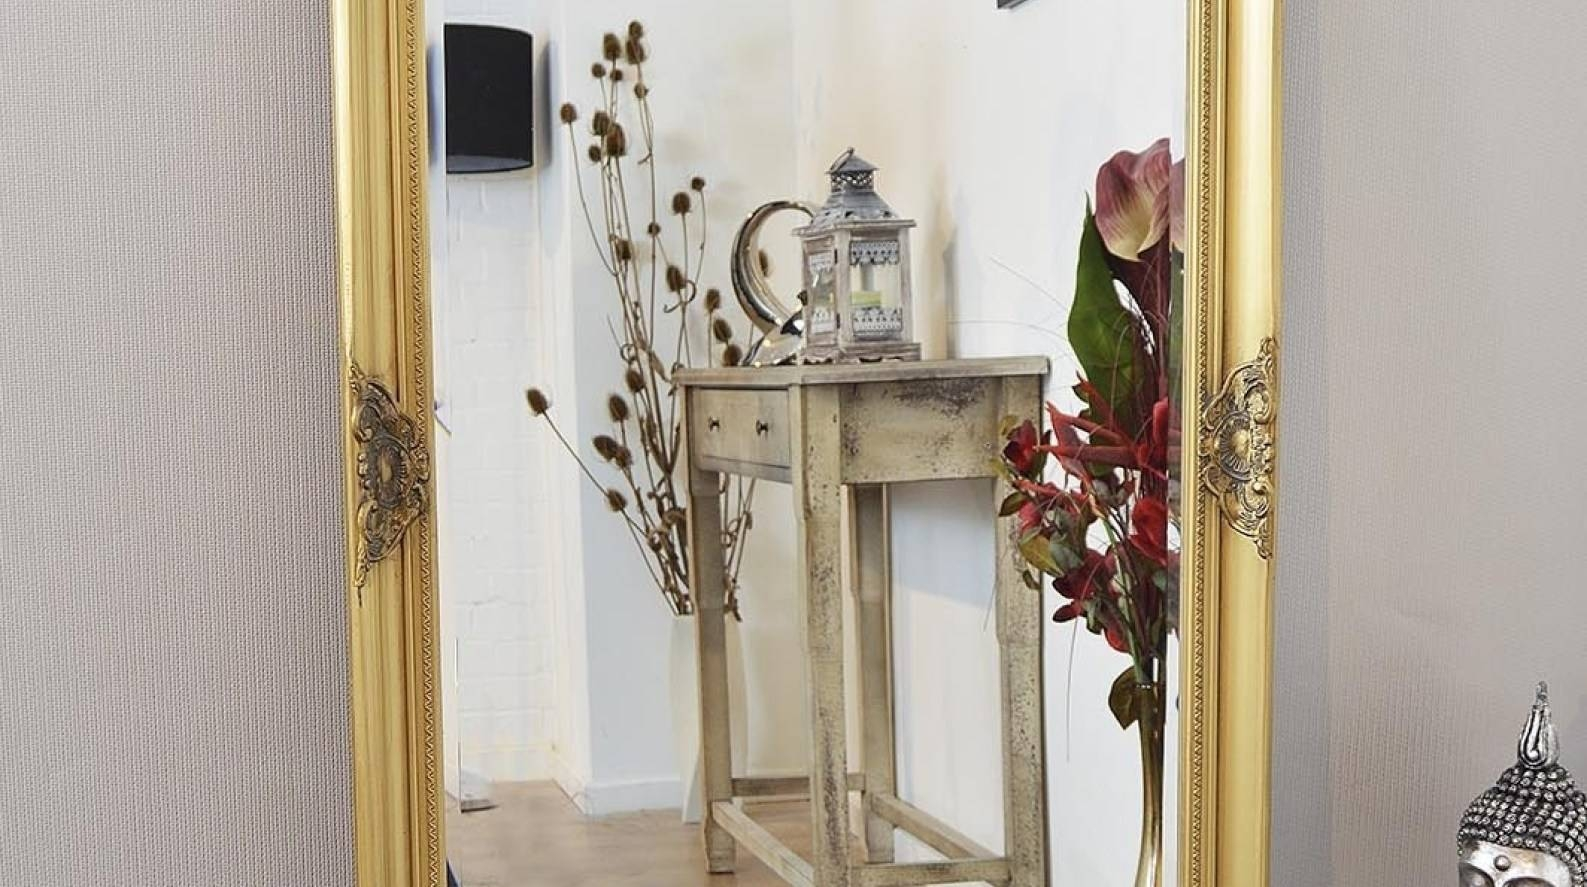 Mirror : Wonderful Extra Large Gold Decorative Antique Full Length Pertaining To Antique Full Length Wall Mirrors (View 11 of 15)